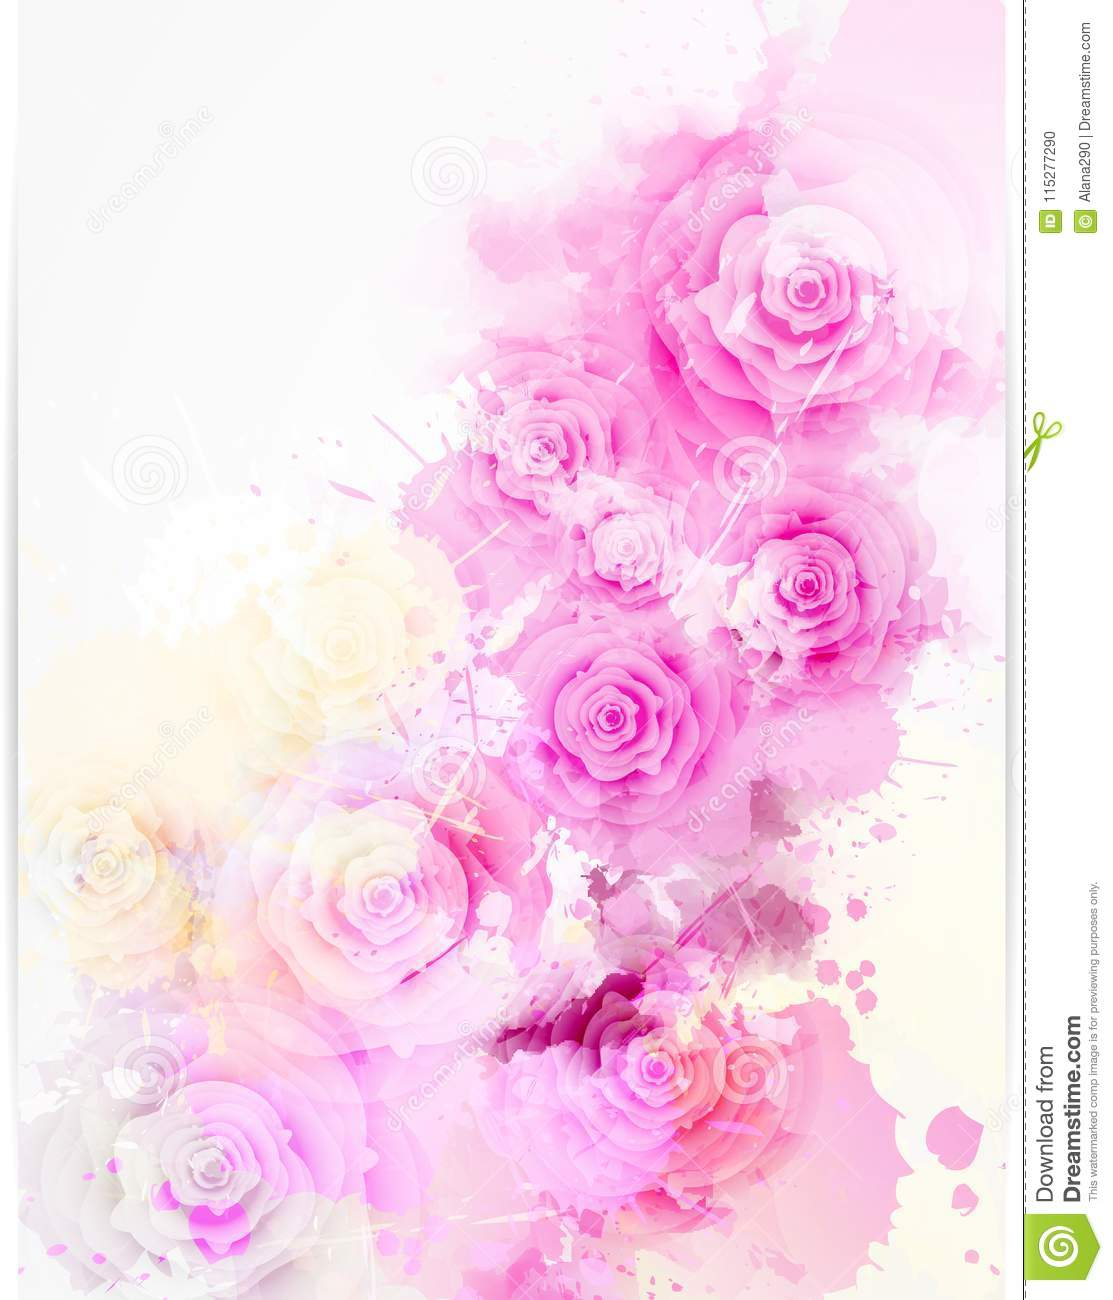 Floral Invitation Wedding Template With Abstract Roses Stock Vector ...